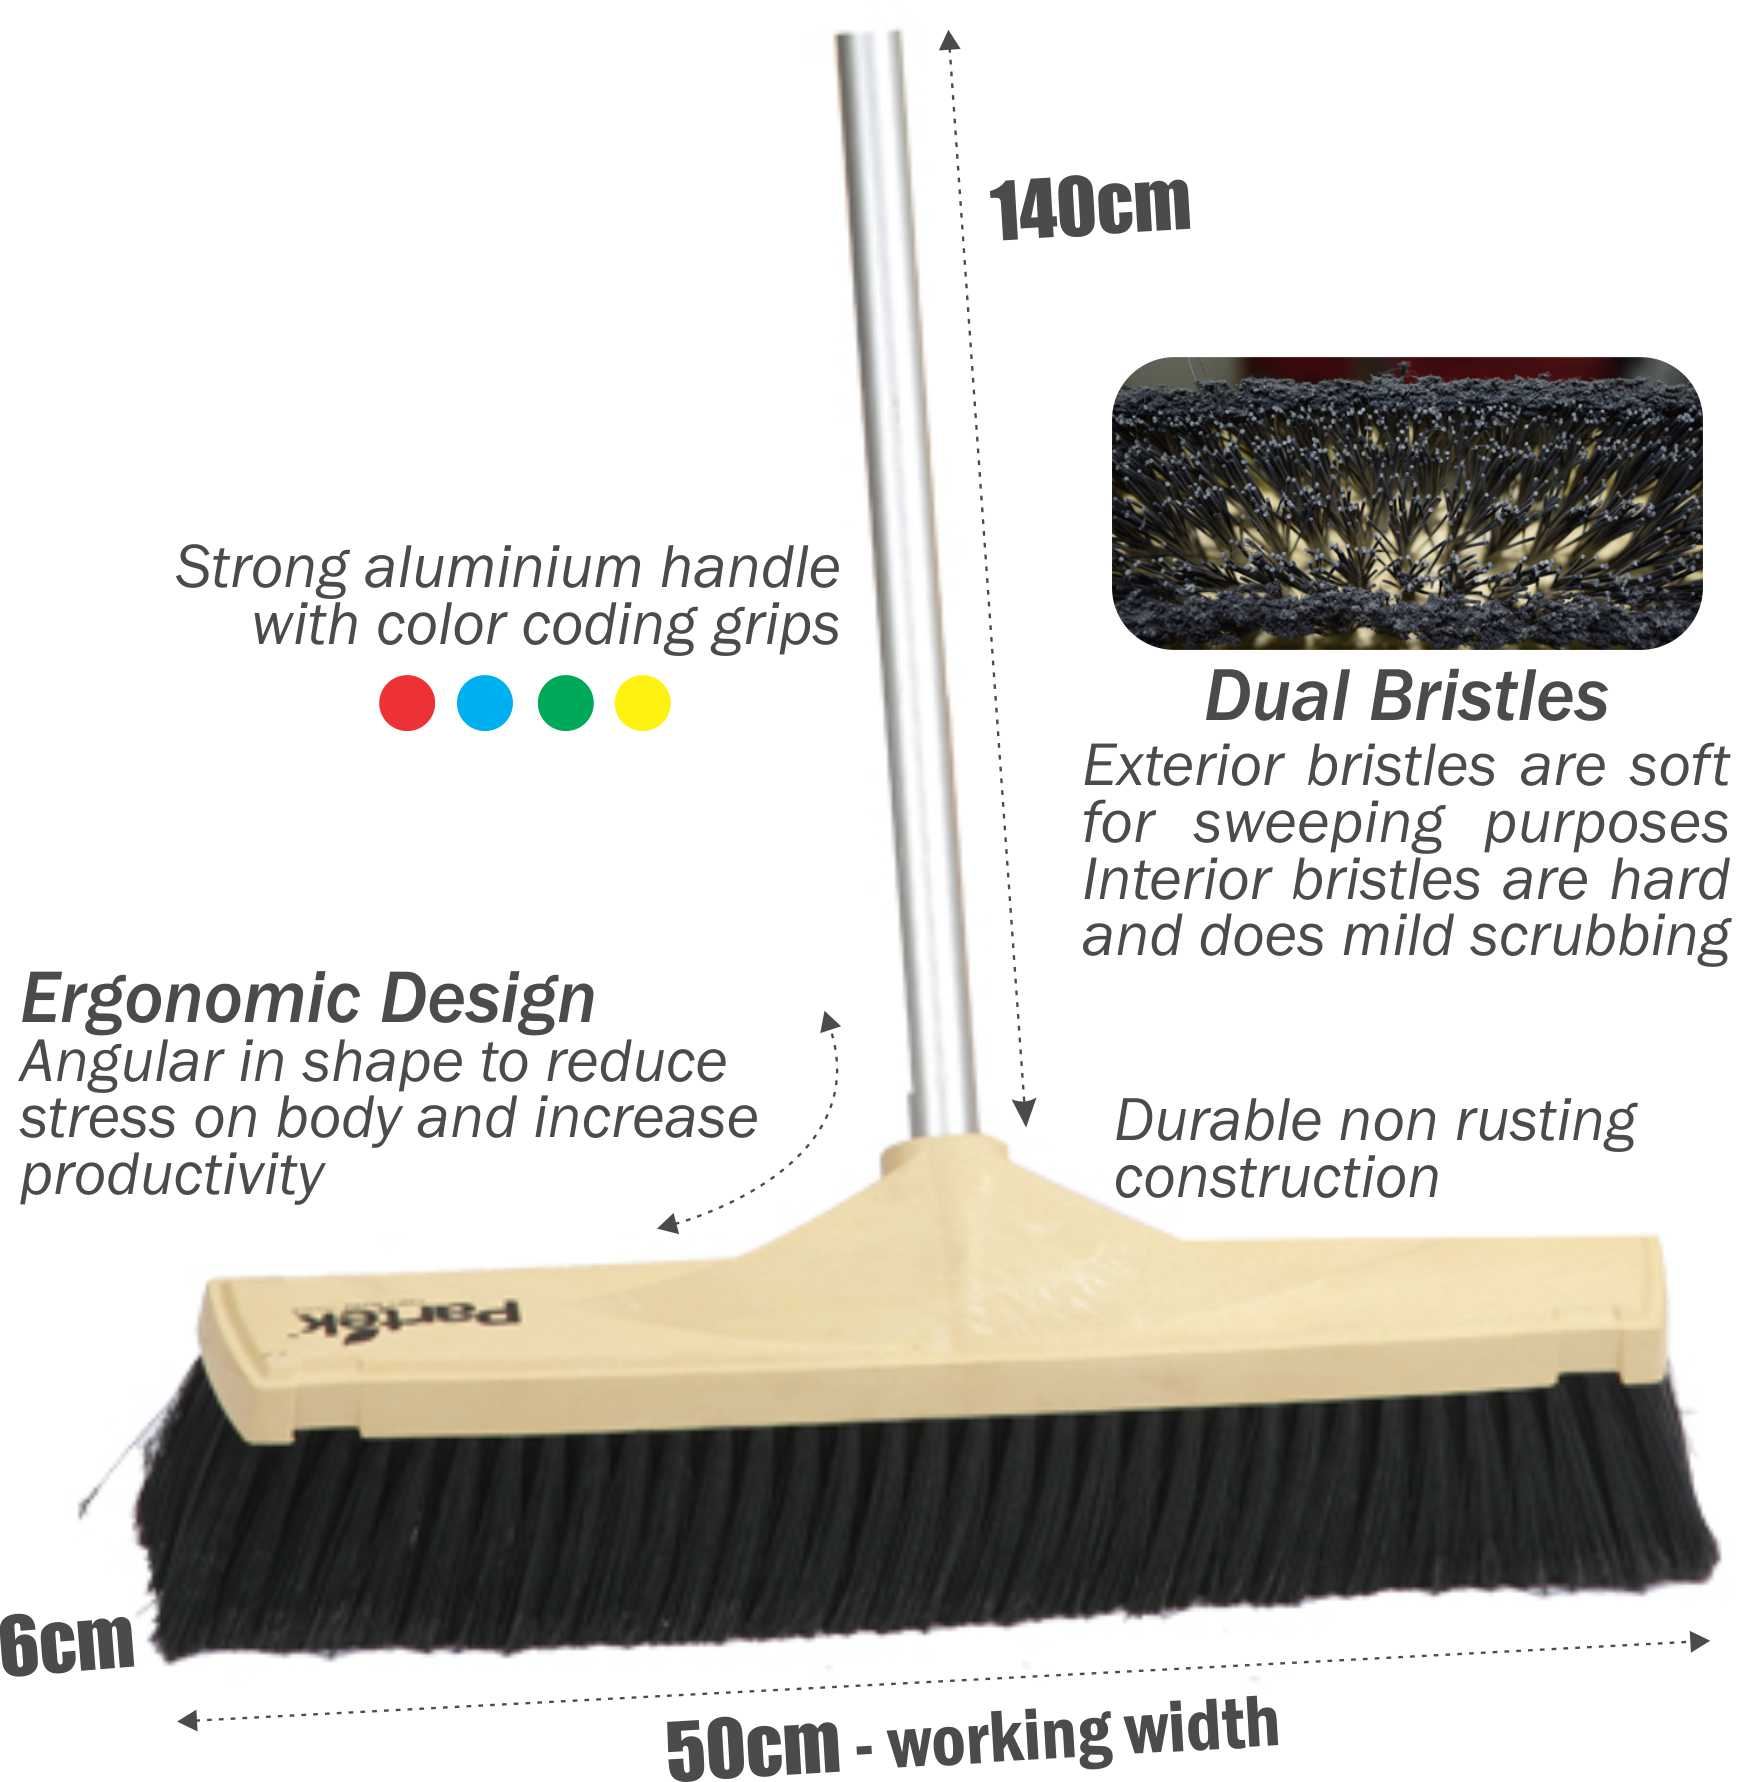 Floor-Sweeping-Brush-info